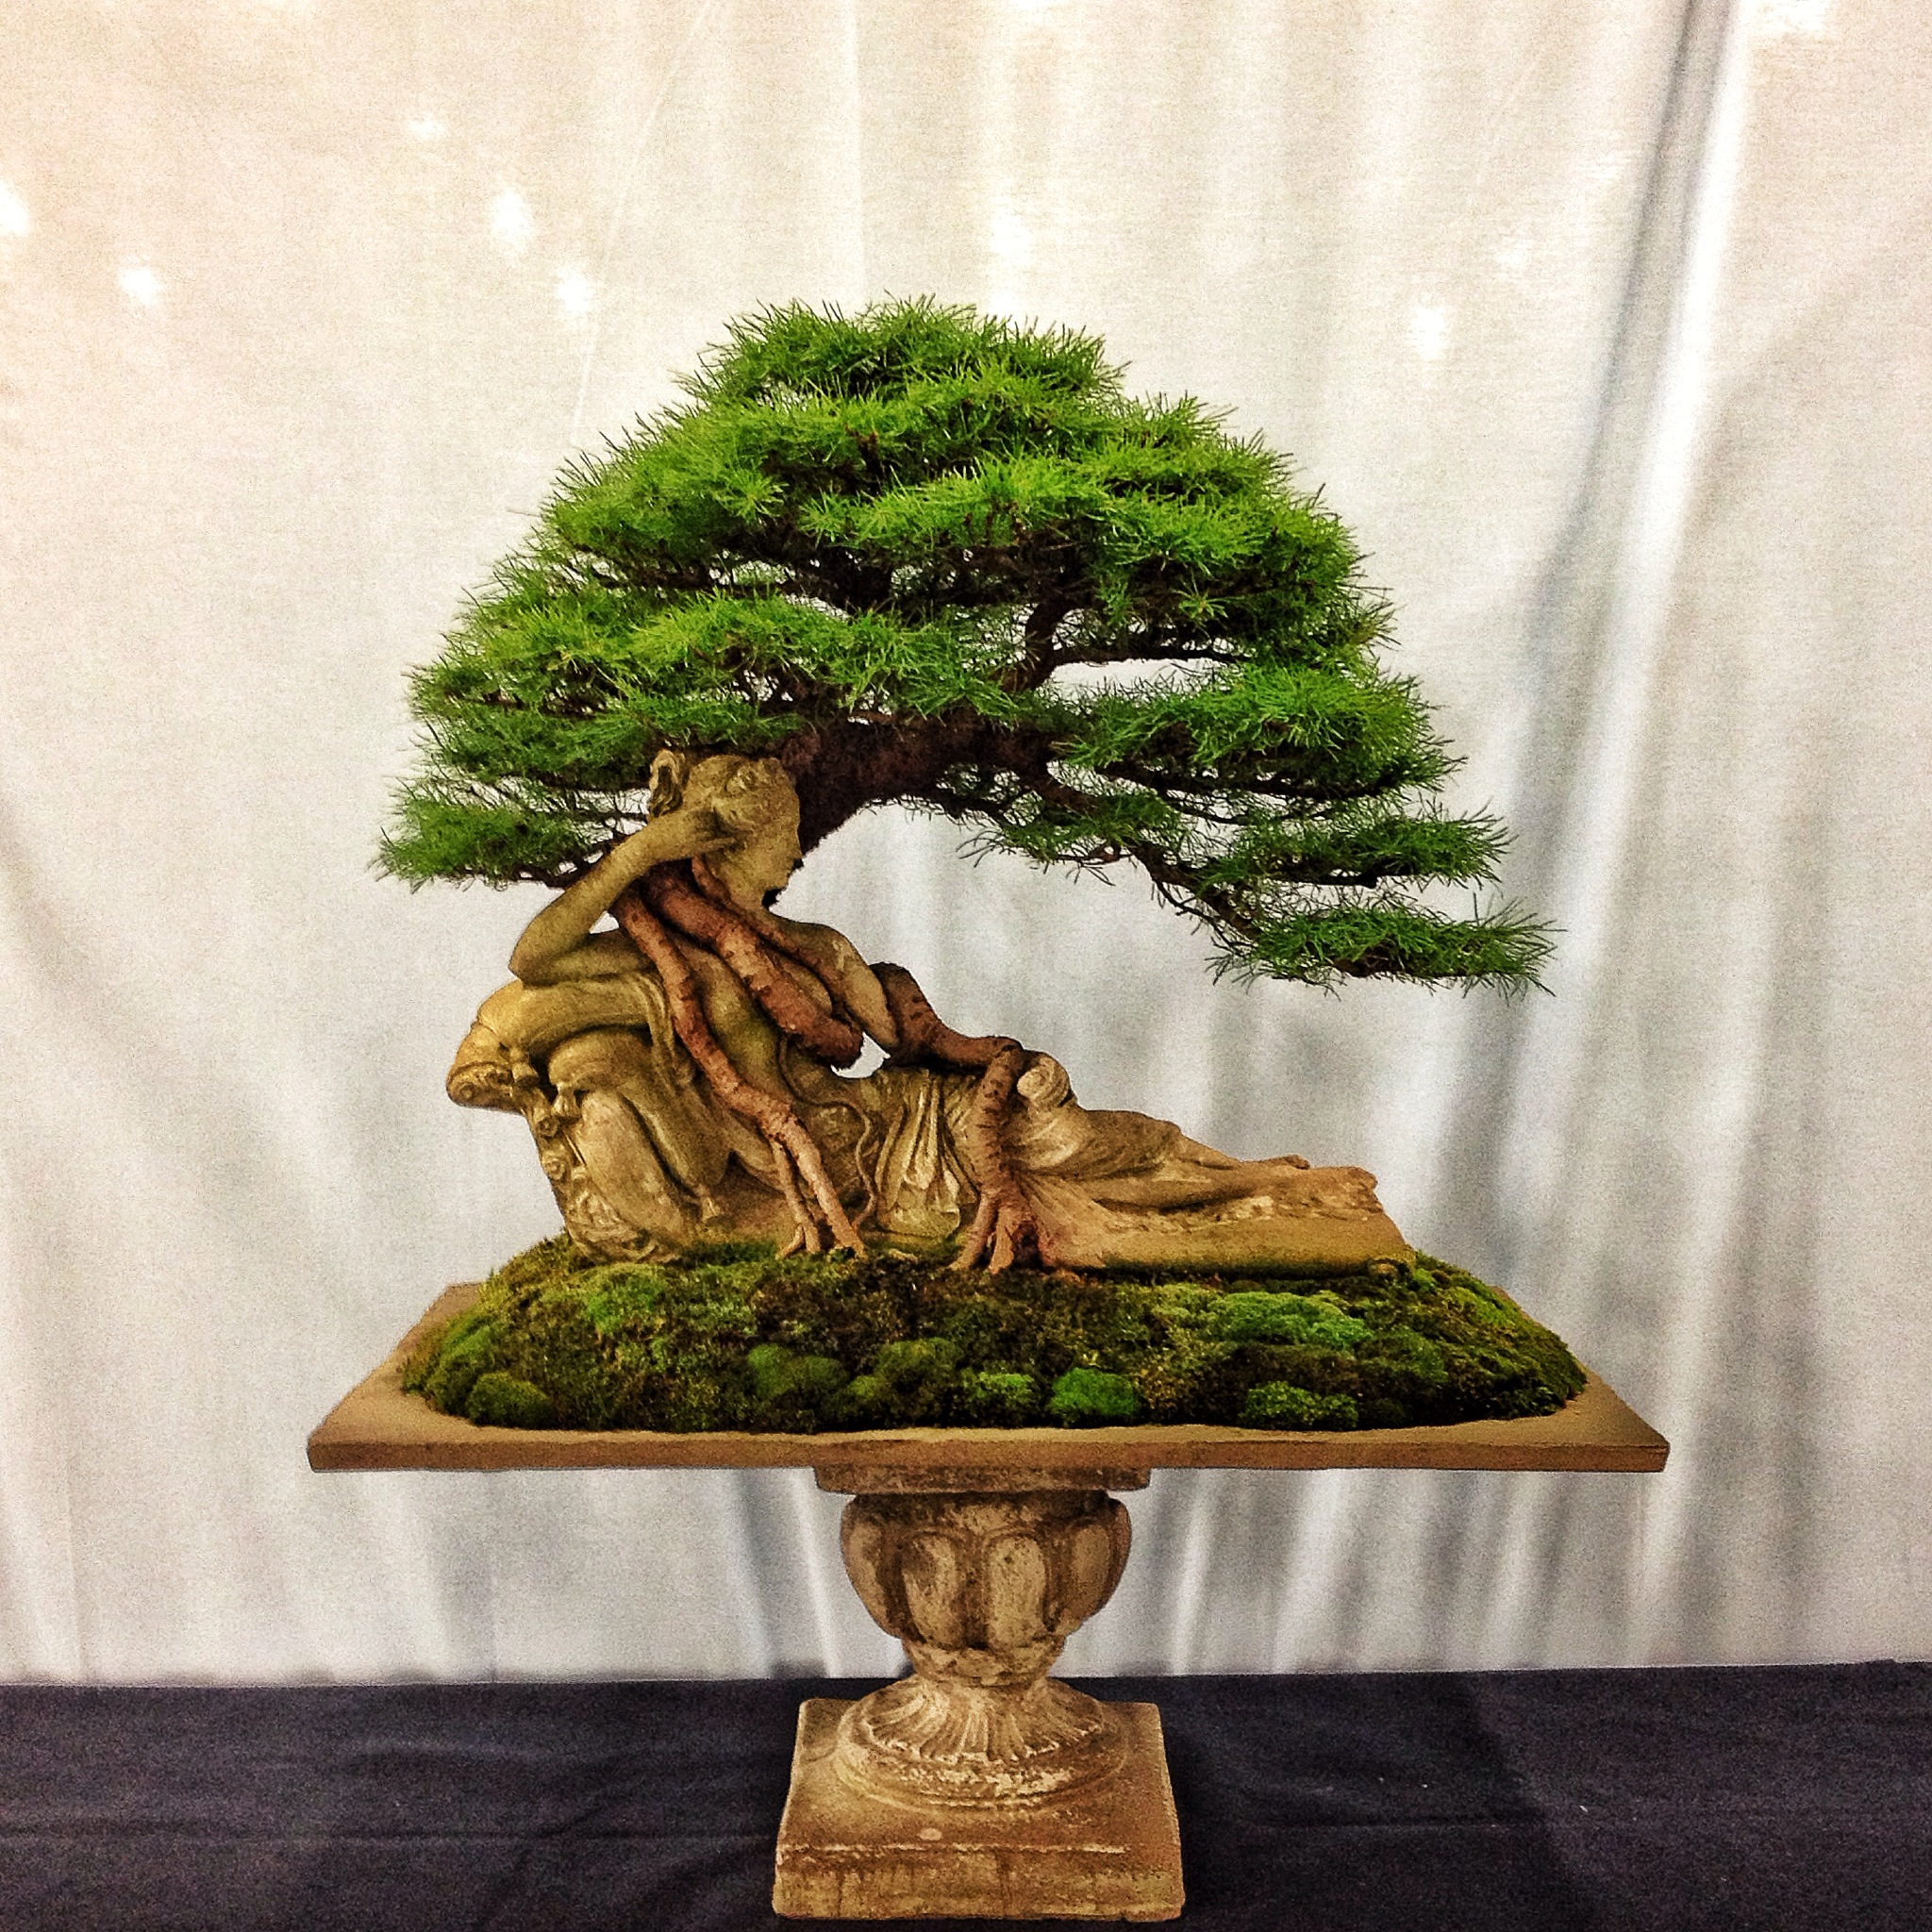 Bonsai Art For Living Room: Rochester Or Bust: My Trip To The 4th U.S. National Bonsai